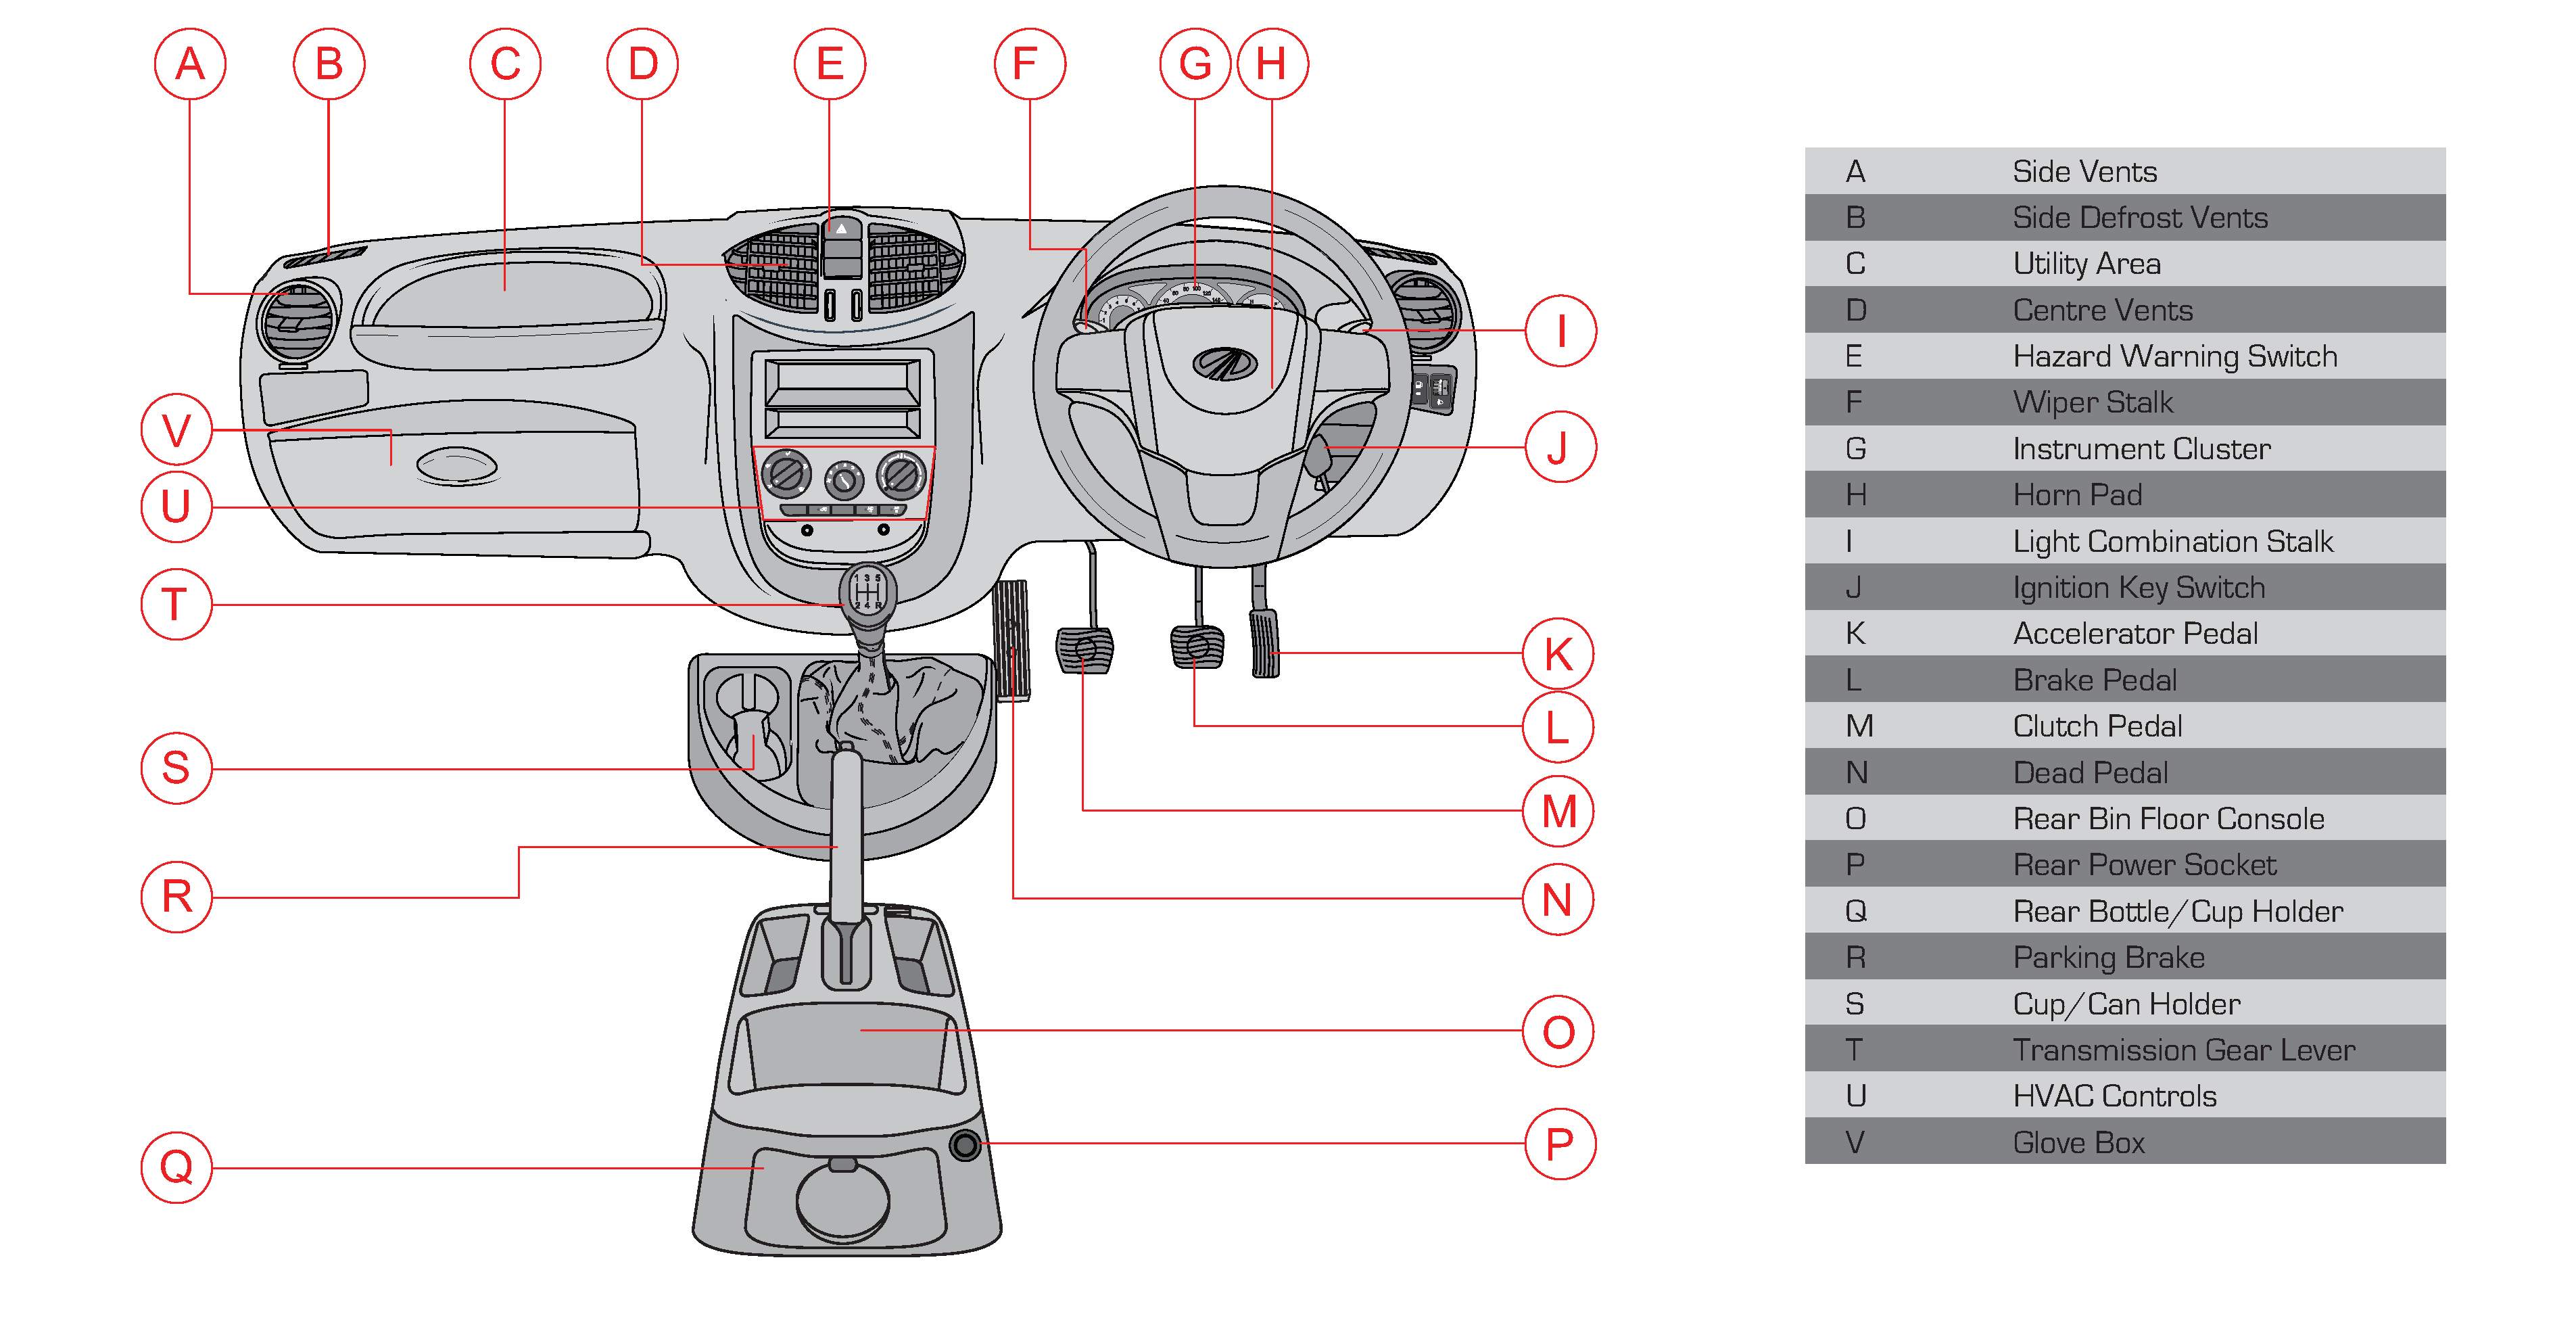 Owners Manual Hvac Control Drawing Symbols Graphic